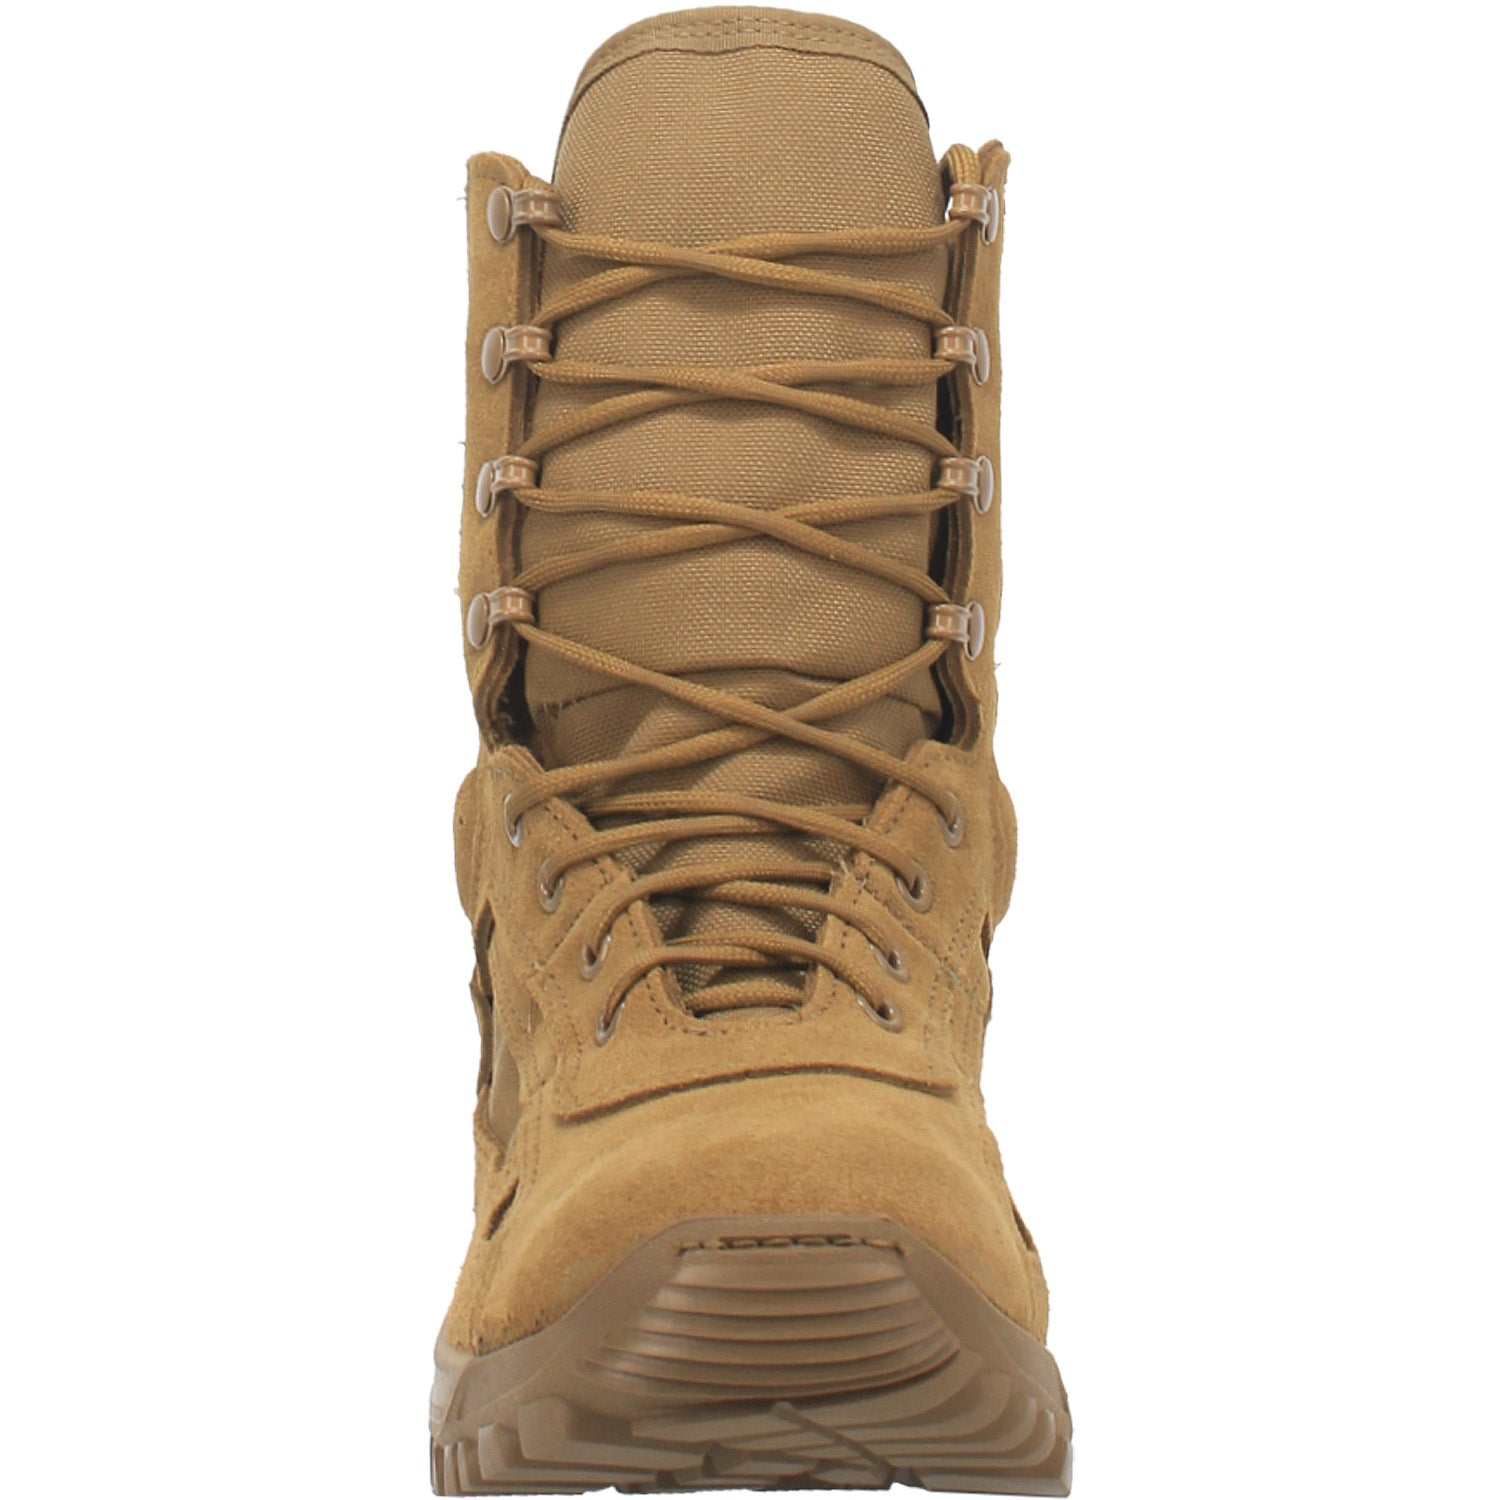 Terassault T1 Hot Weather Performance Combat Boot 14940747366442